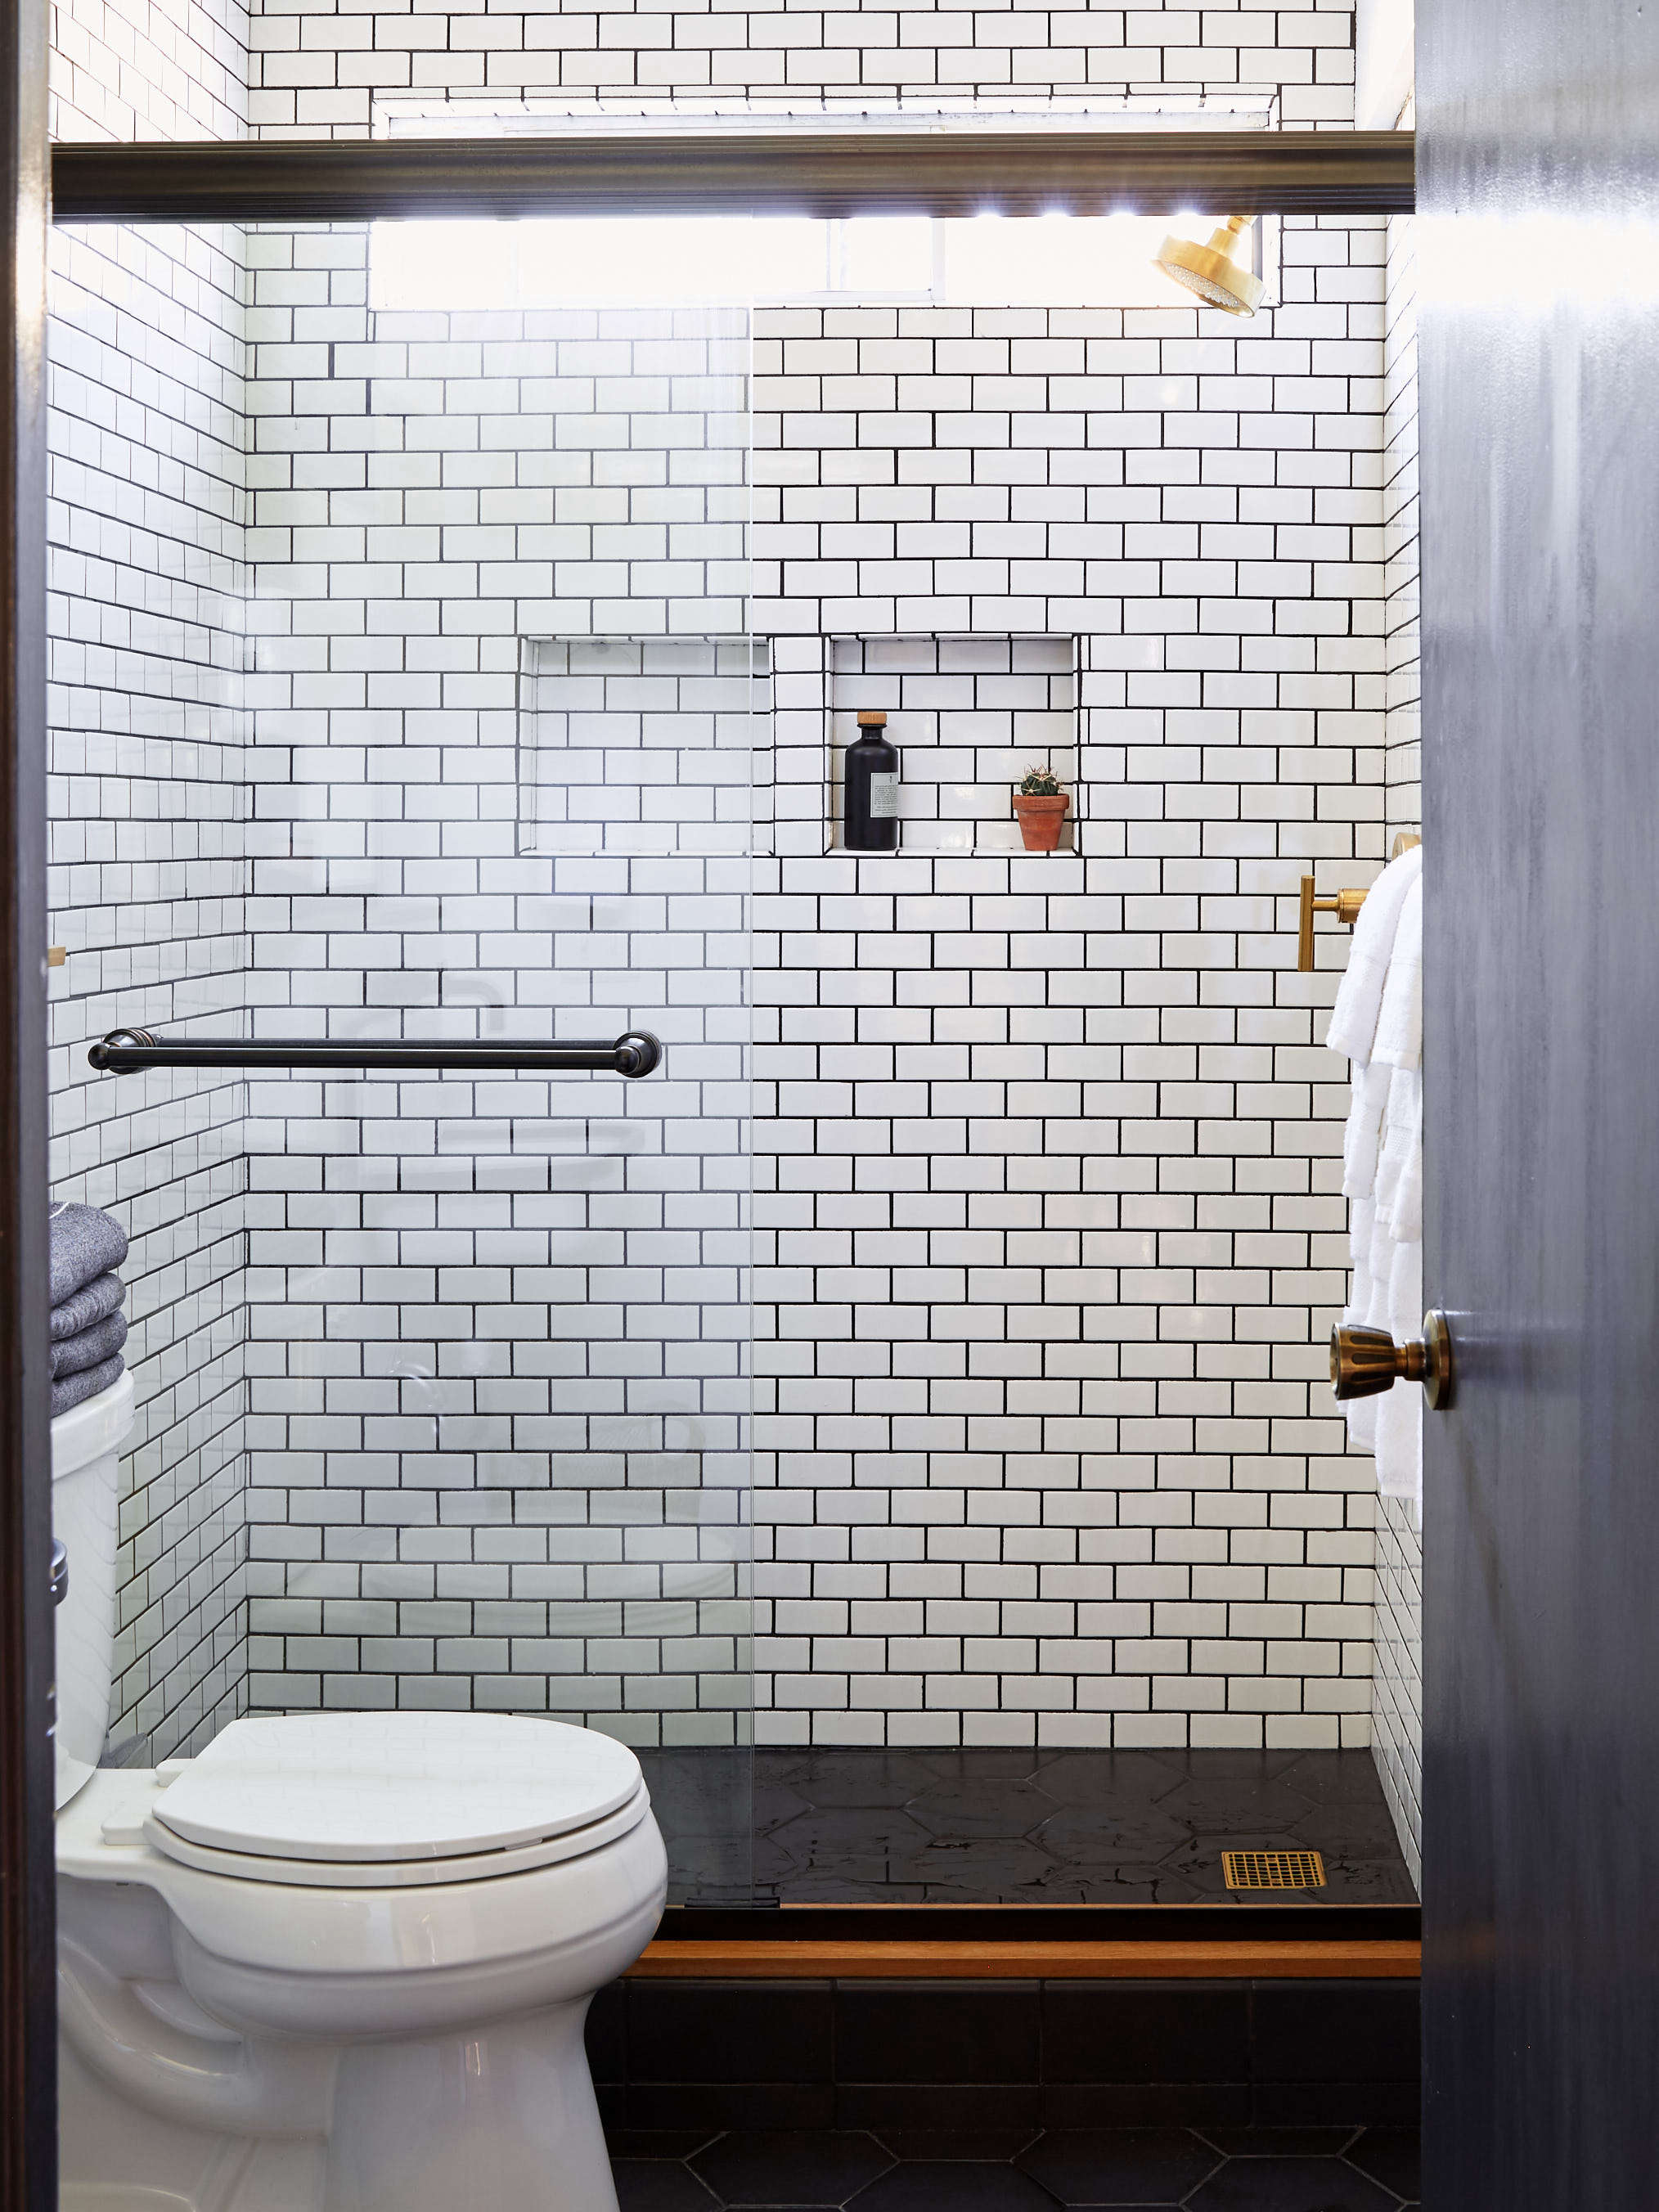 joshua tree casita subway tiled bath with dark grout, kate sears photo